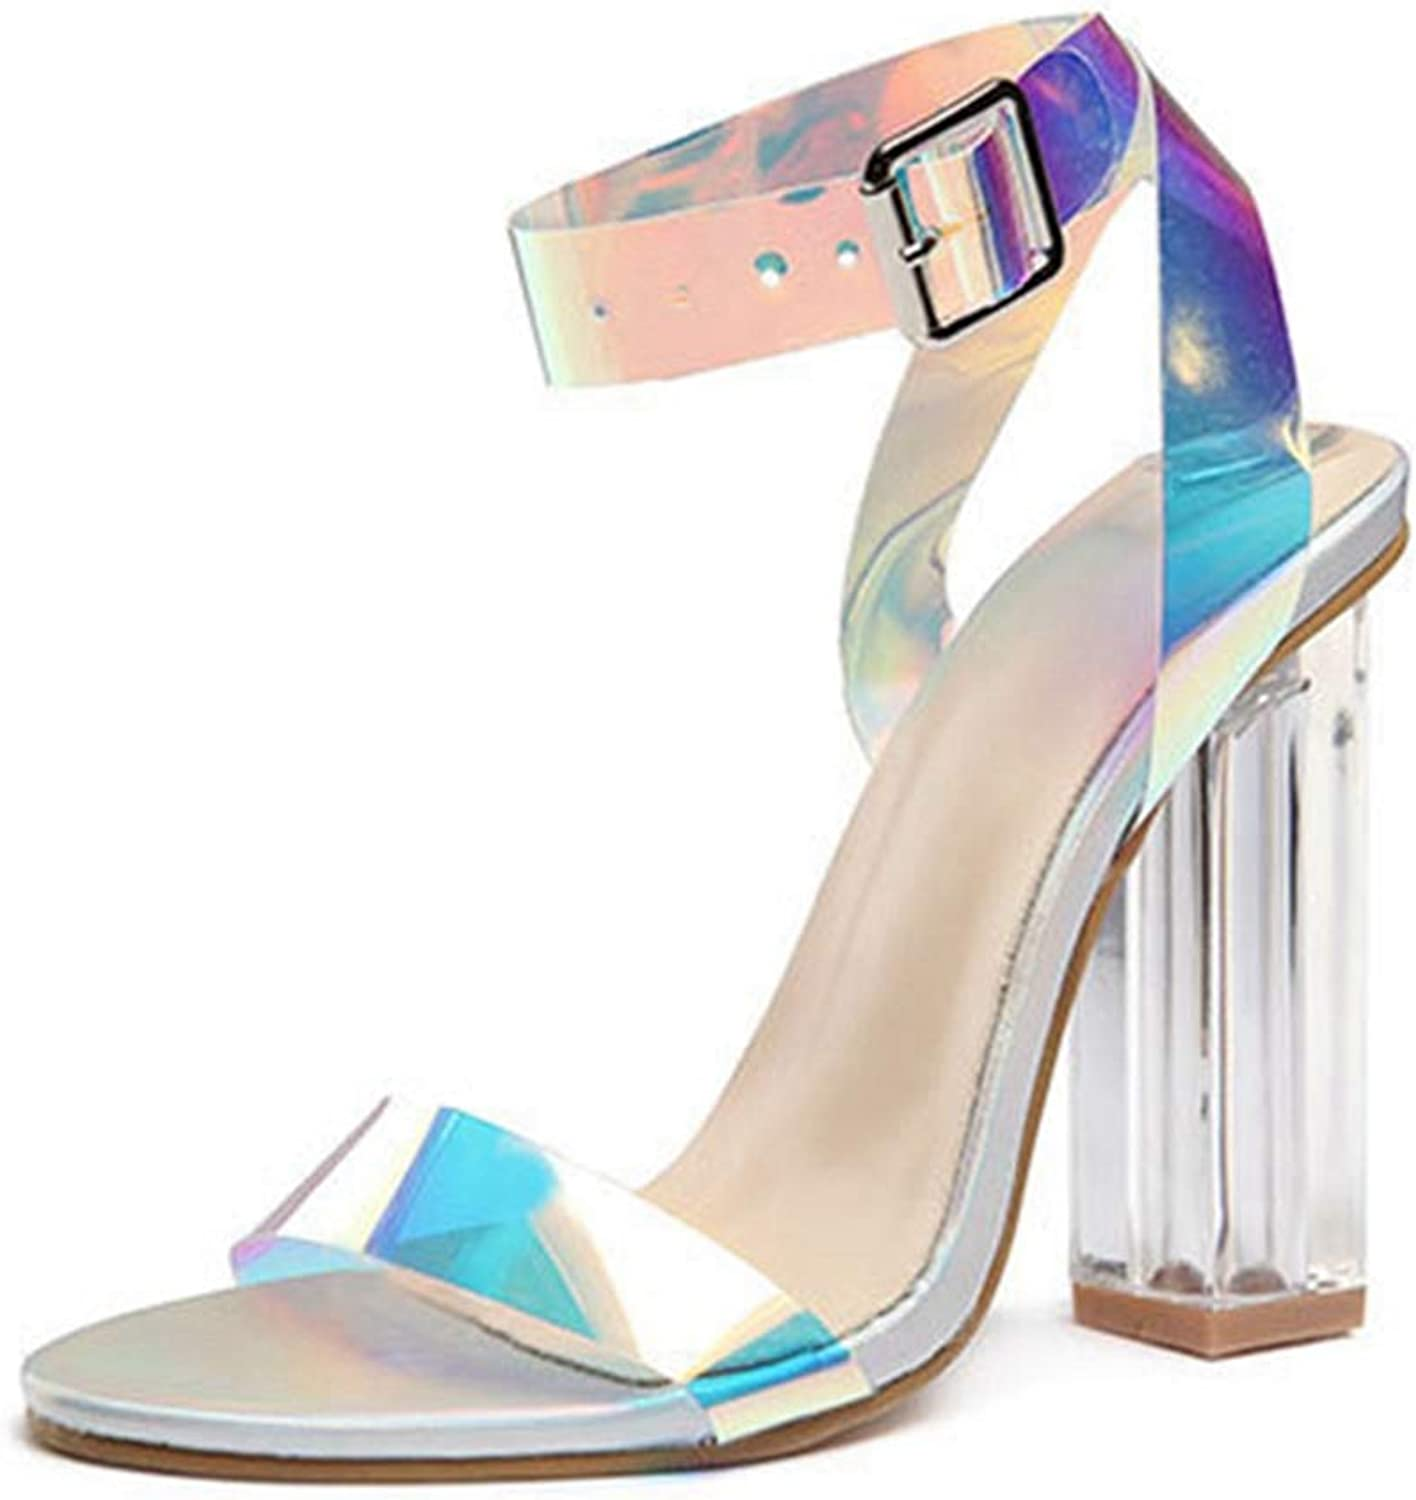 Summer Sandals Women Square High Heel Ladies Party Casual shoes Brilliant shoes Crystal Open Toe Sandal